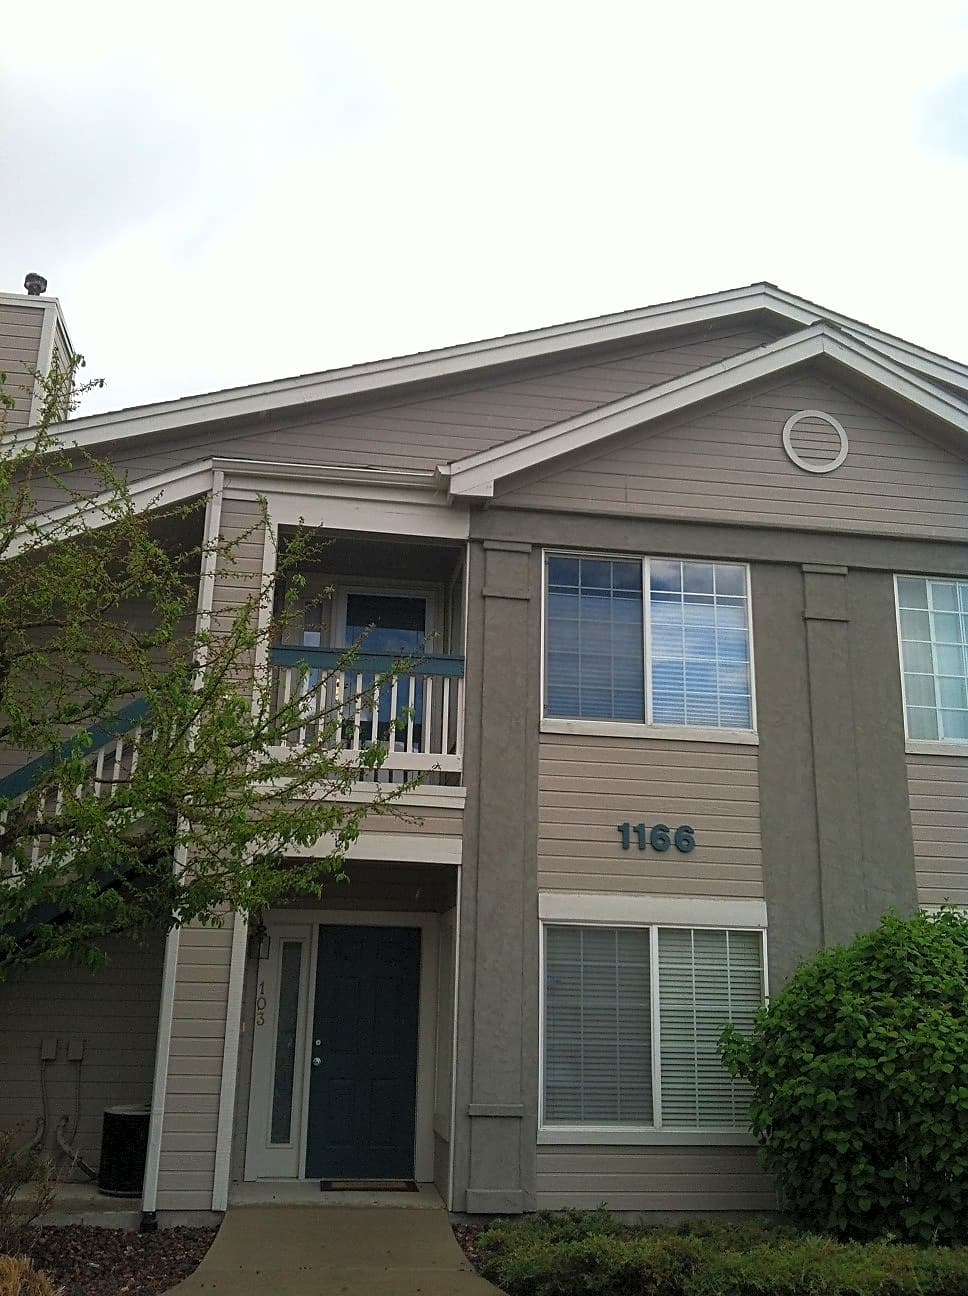 Condo for Rent in Broomfield